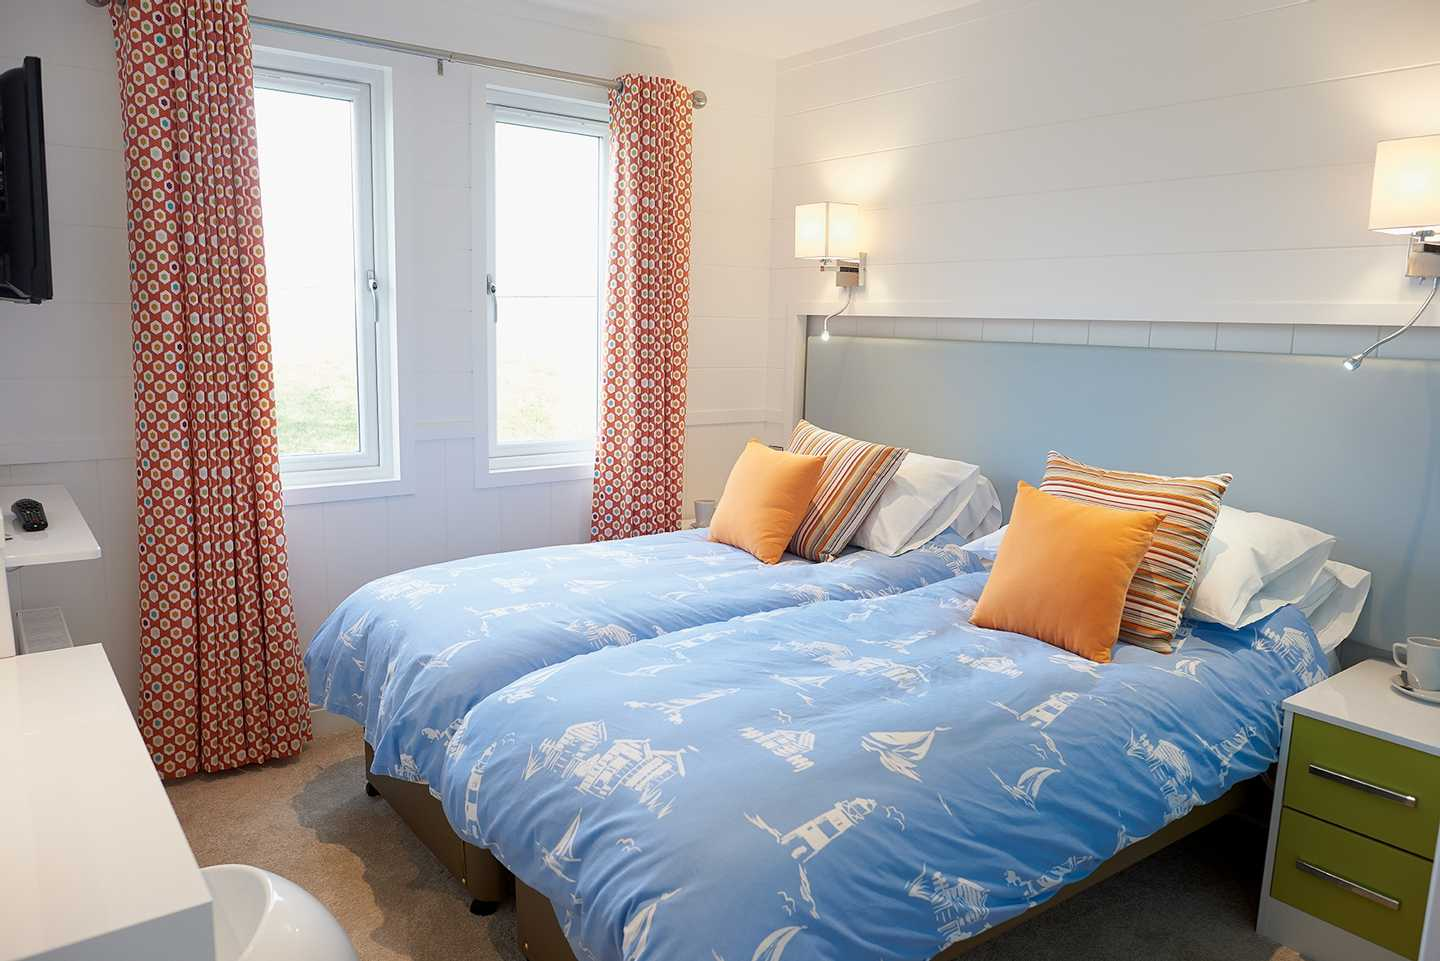 A Beach House twin bedroom with blue bed covers